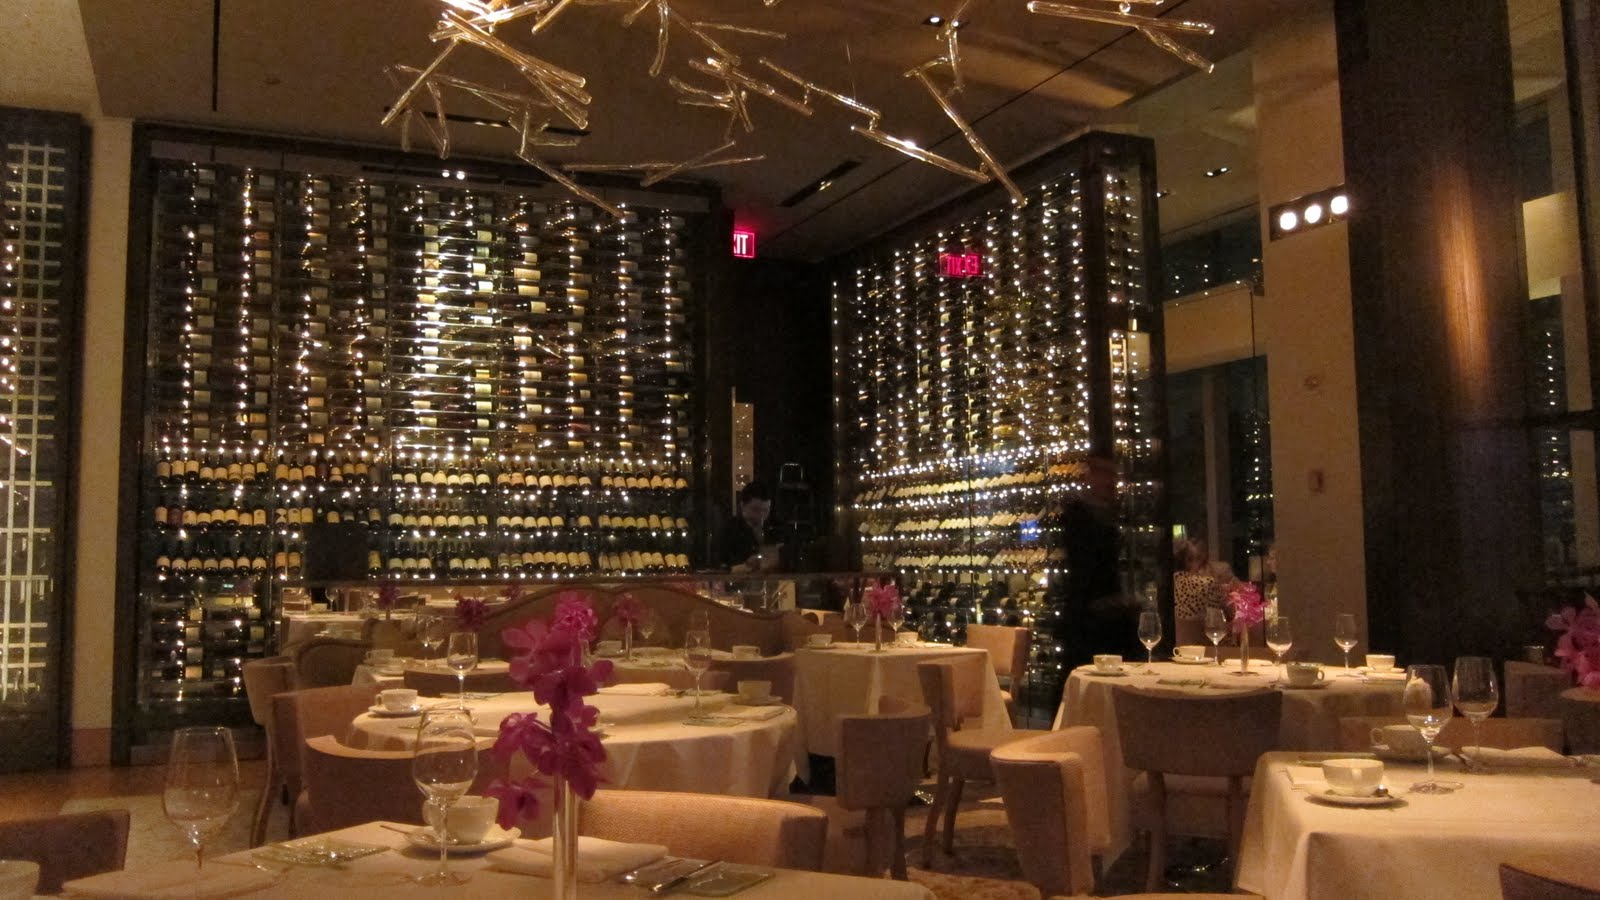 Asiate Nyc Restaurants Top 10 Best Looking In New York Img 2982